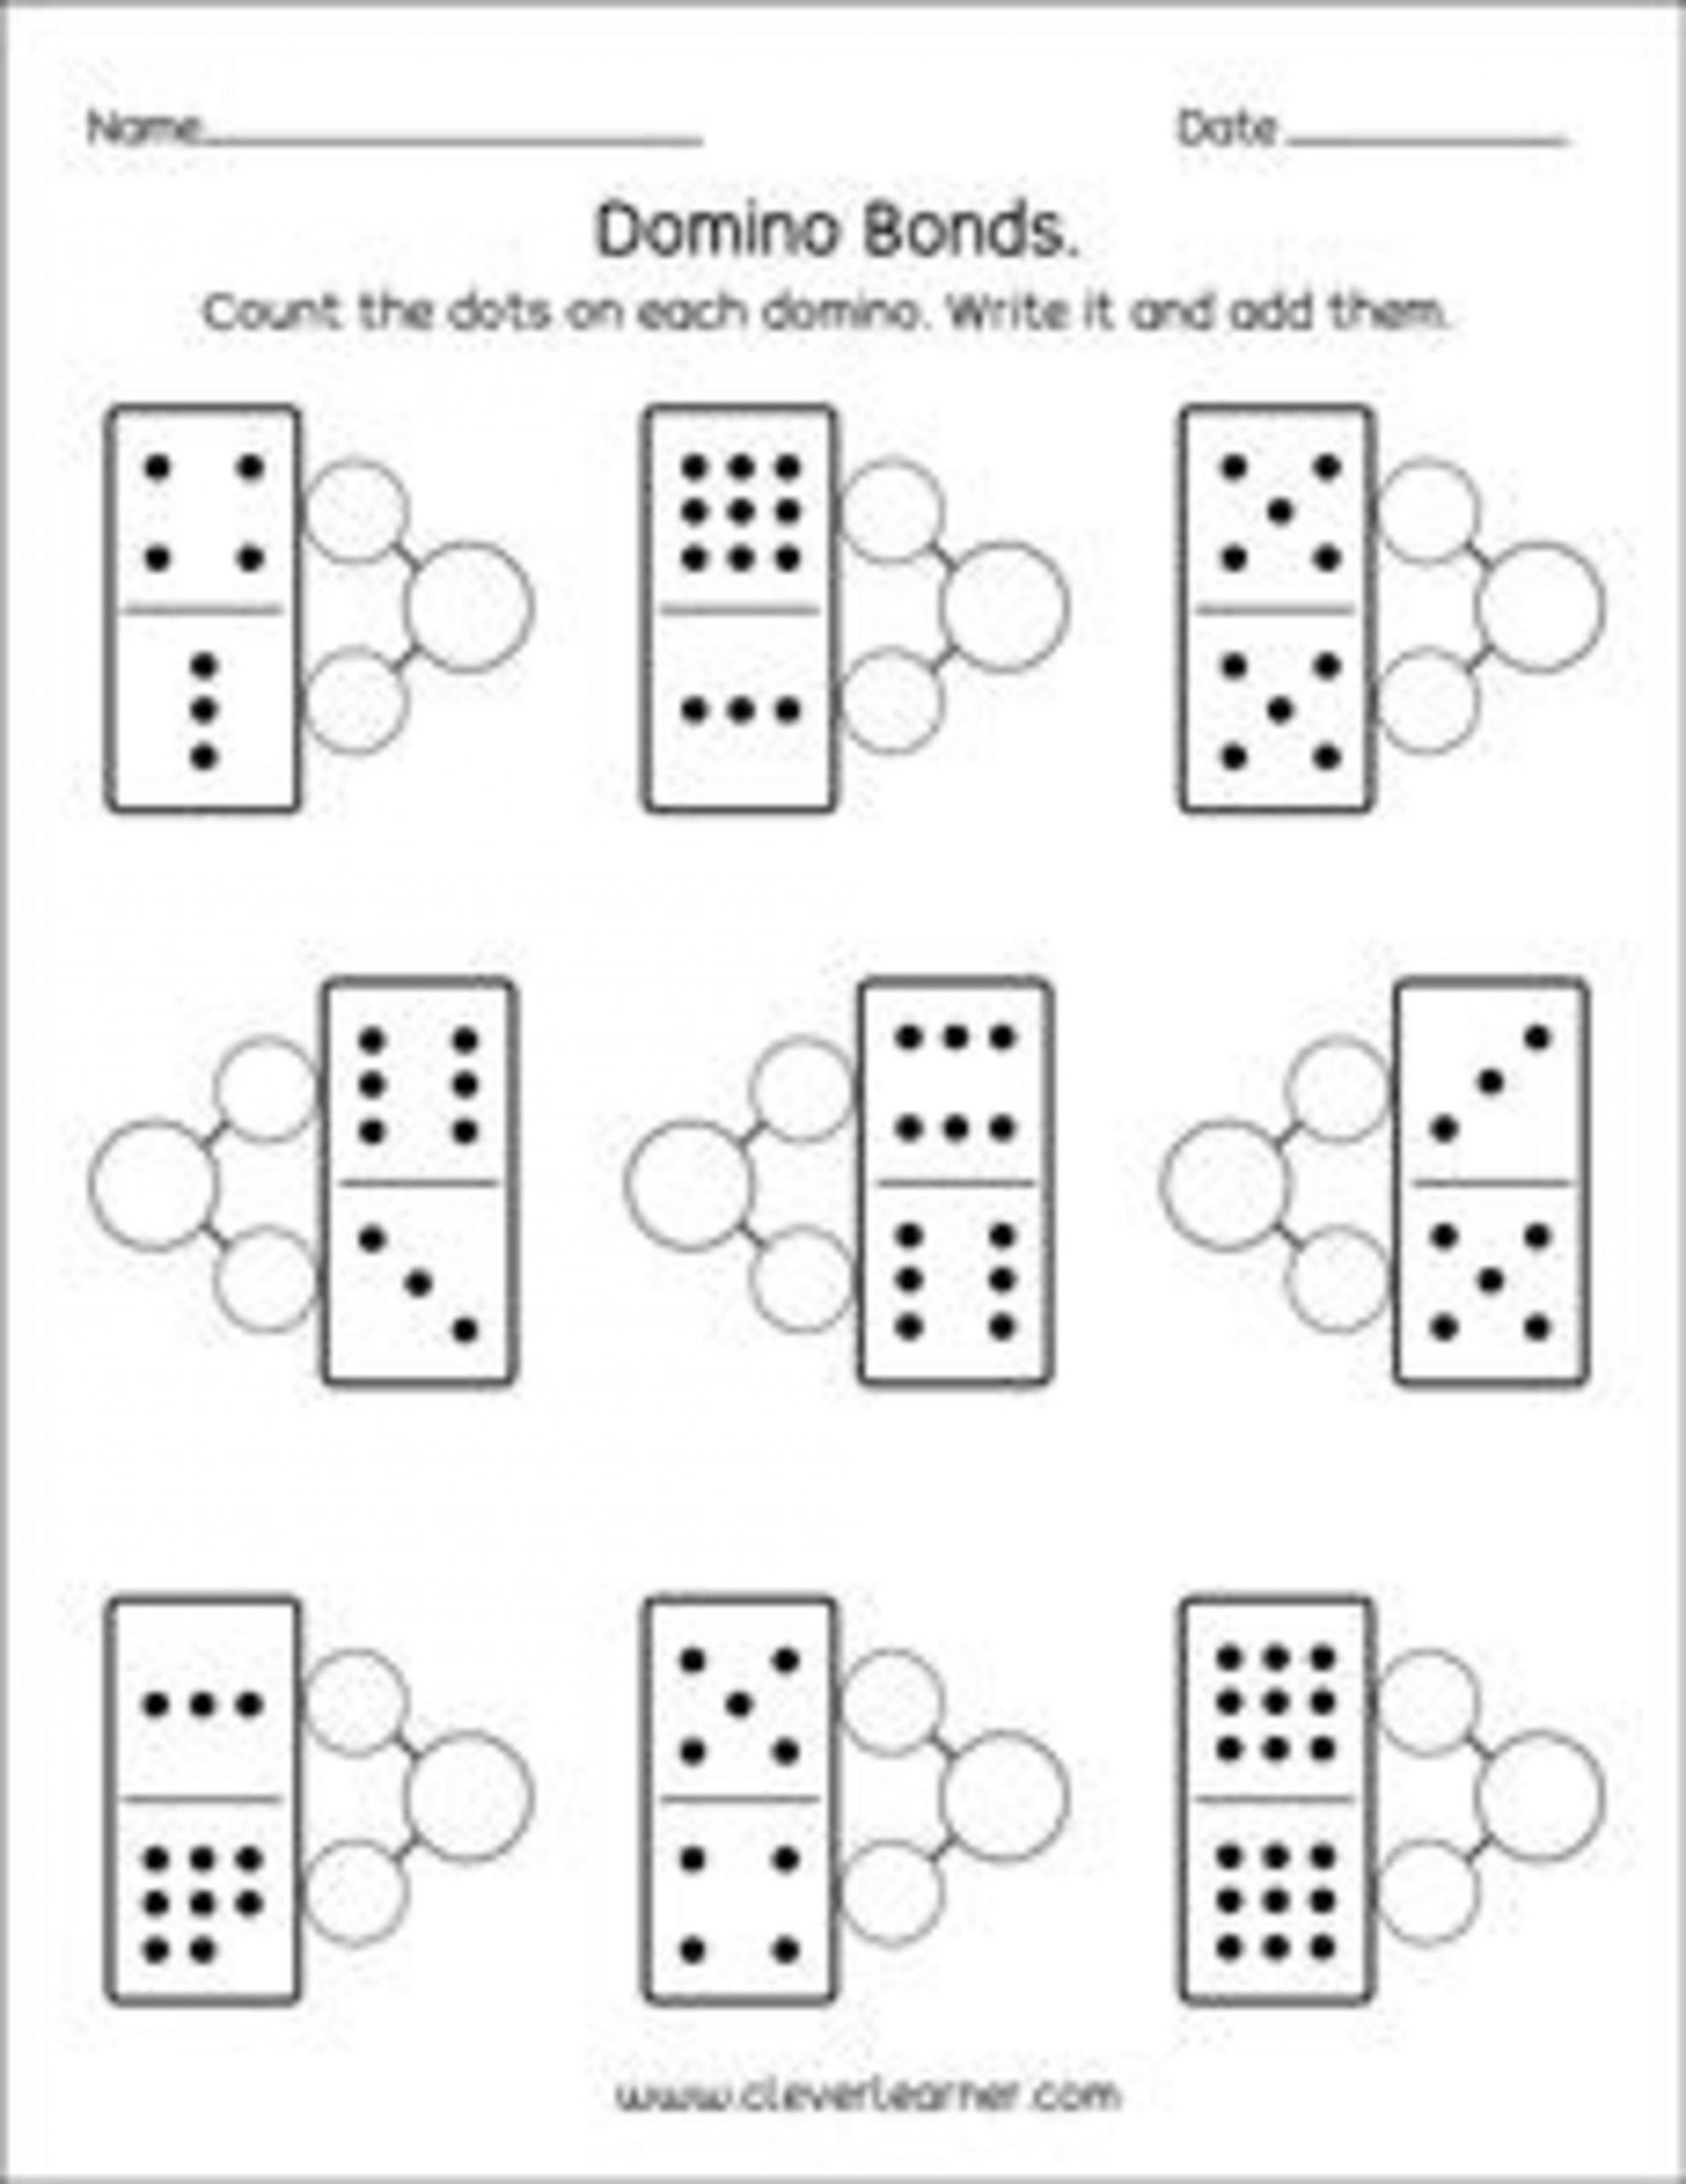 Number Bond Worksheets 1st Grade Free Number Bonds Worksheets Math Free Preschool